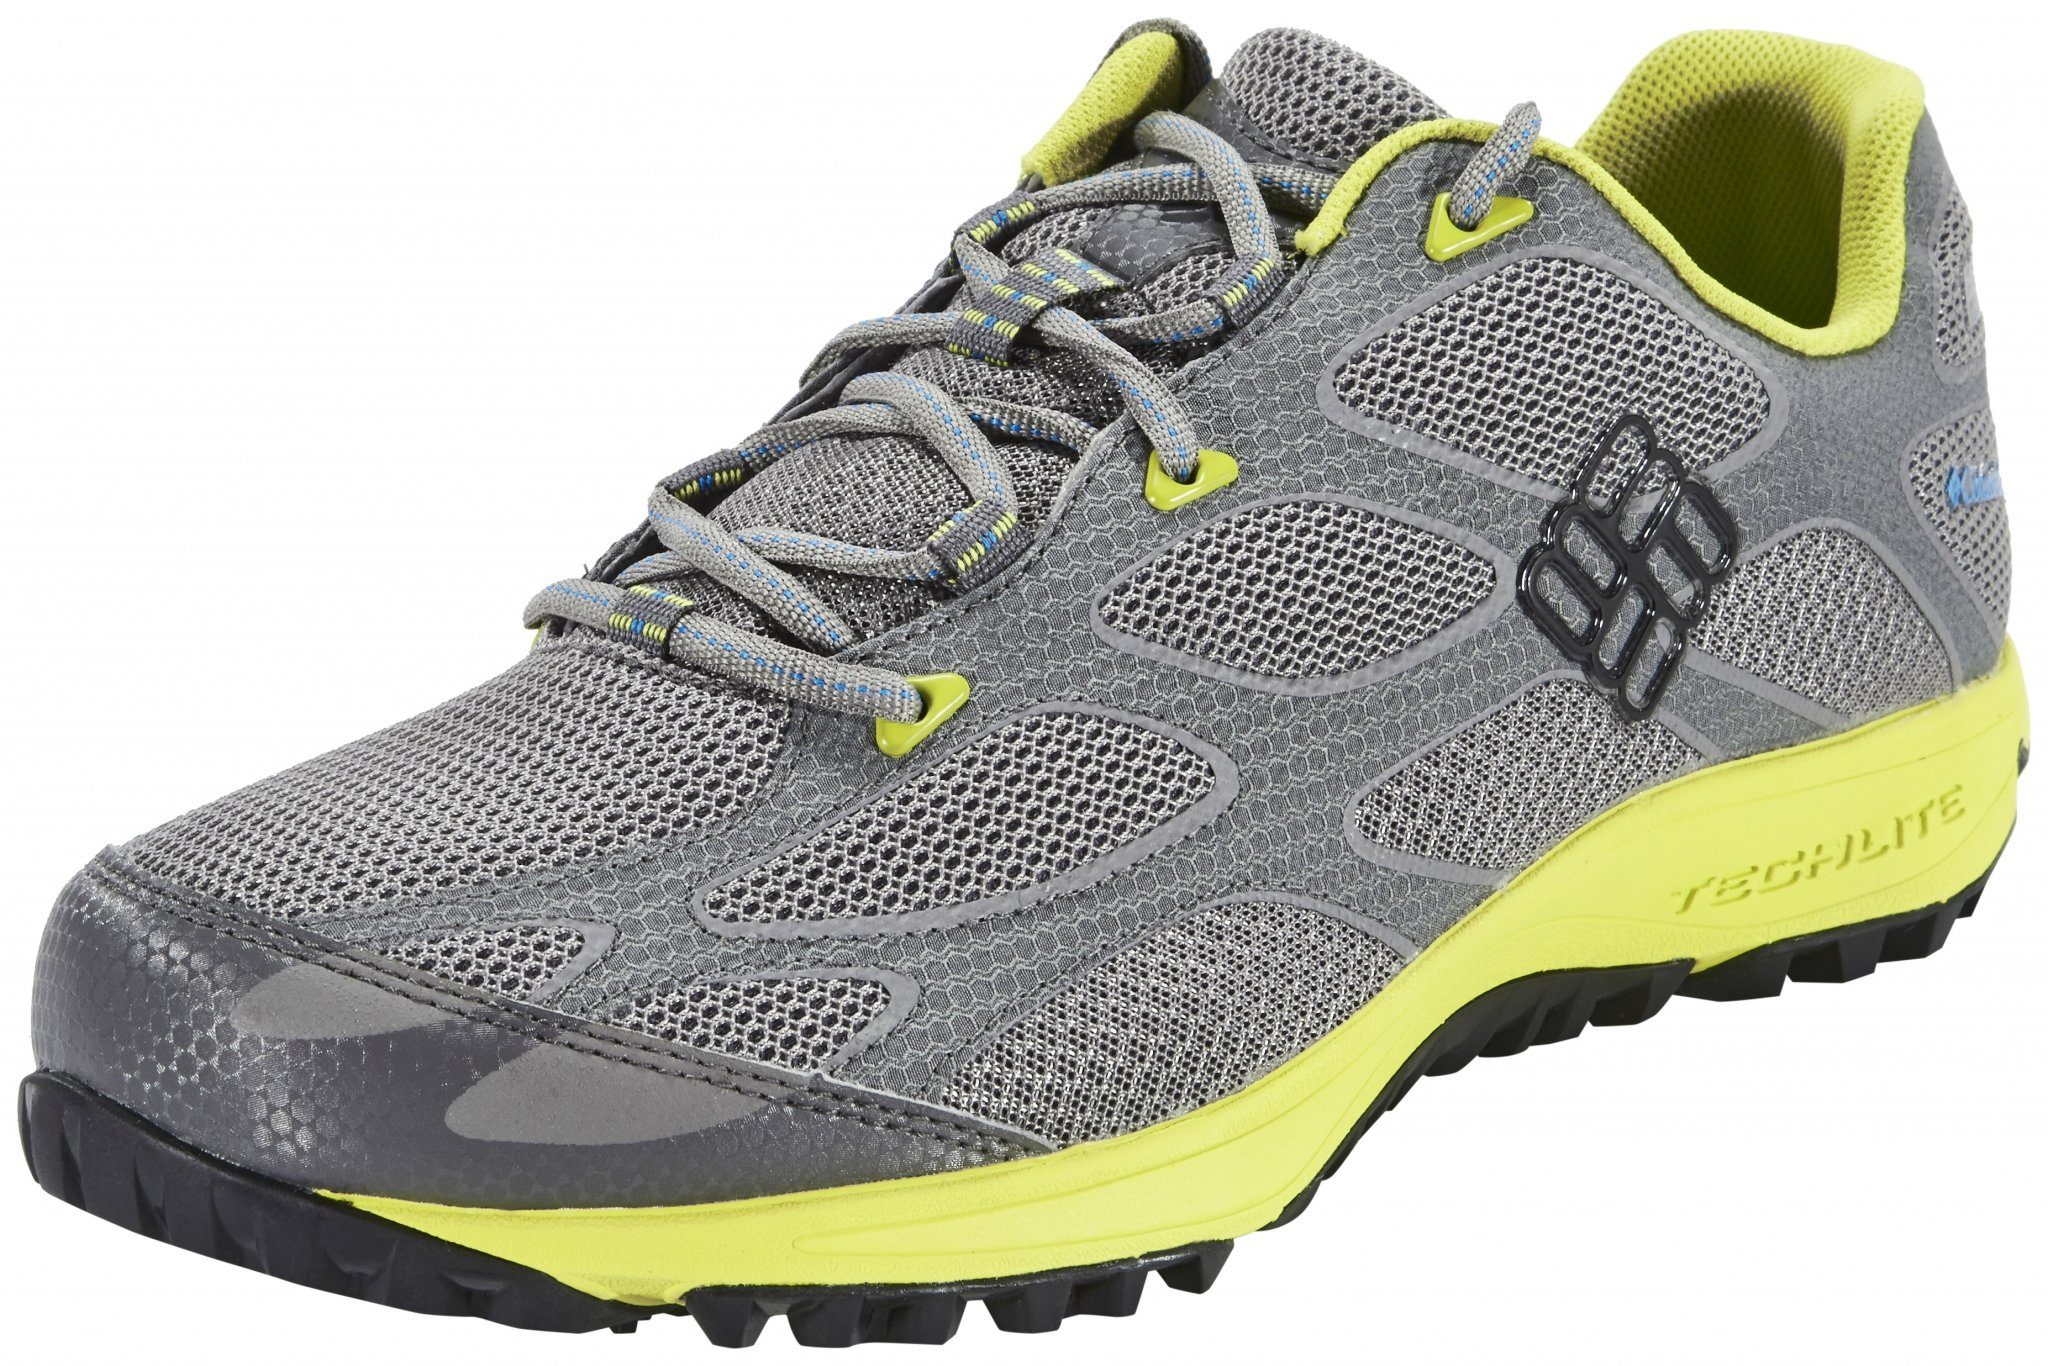 Columbia Kletterschuh »Conspiracy IV Outdry Shoes Men«